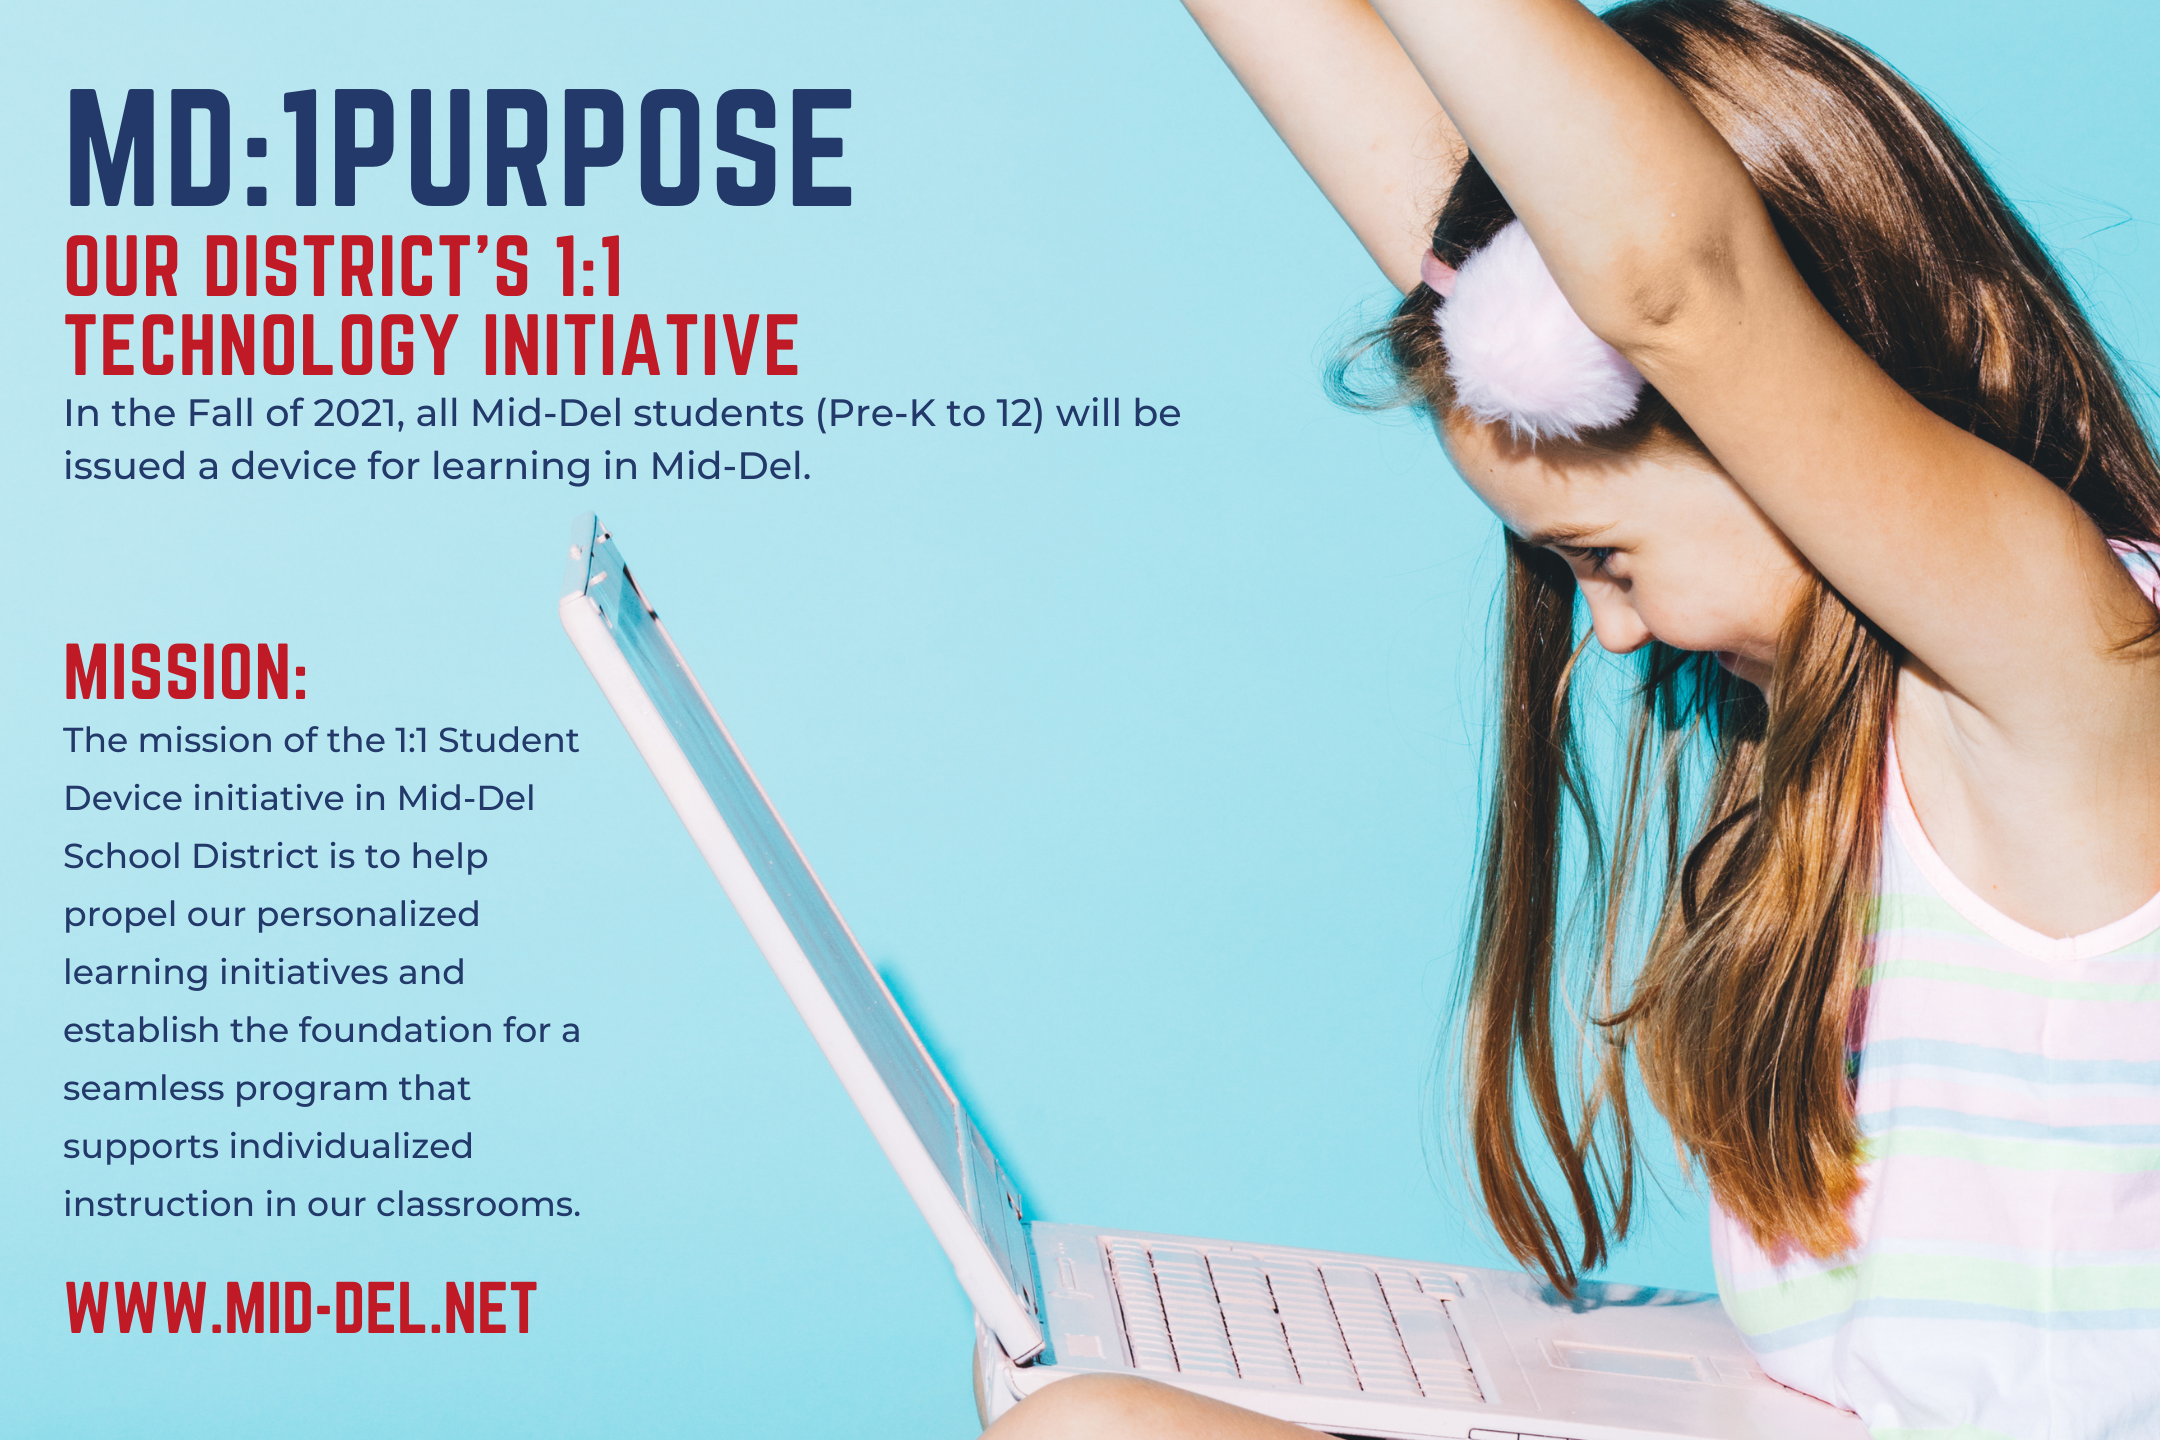 MD:1Purpose the District's 1:1 Technology Initiative